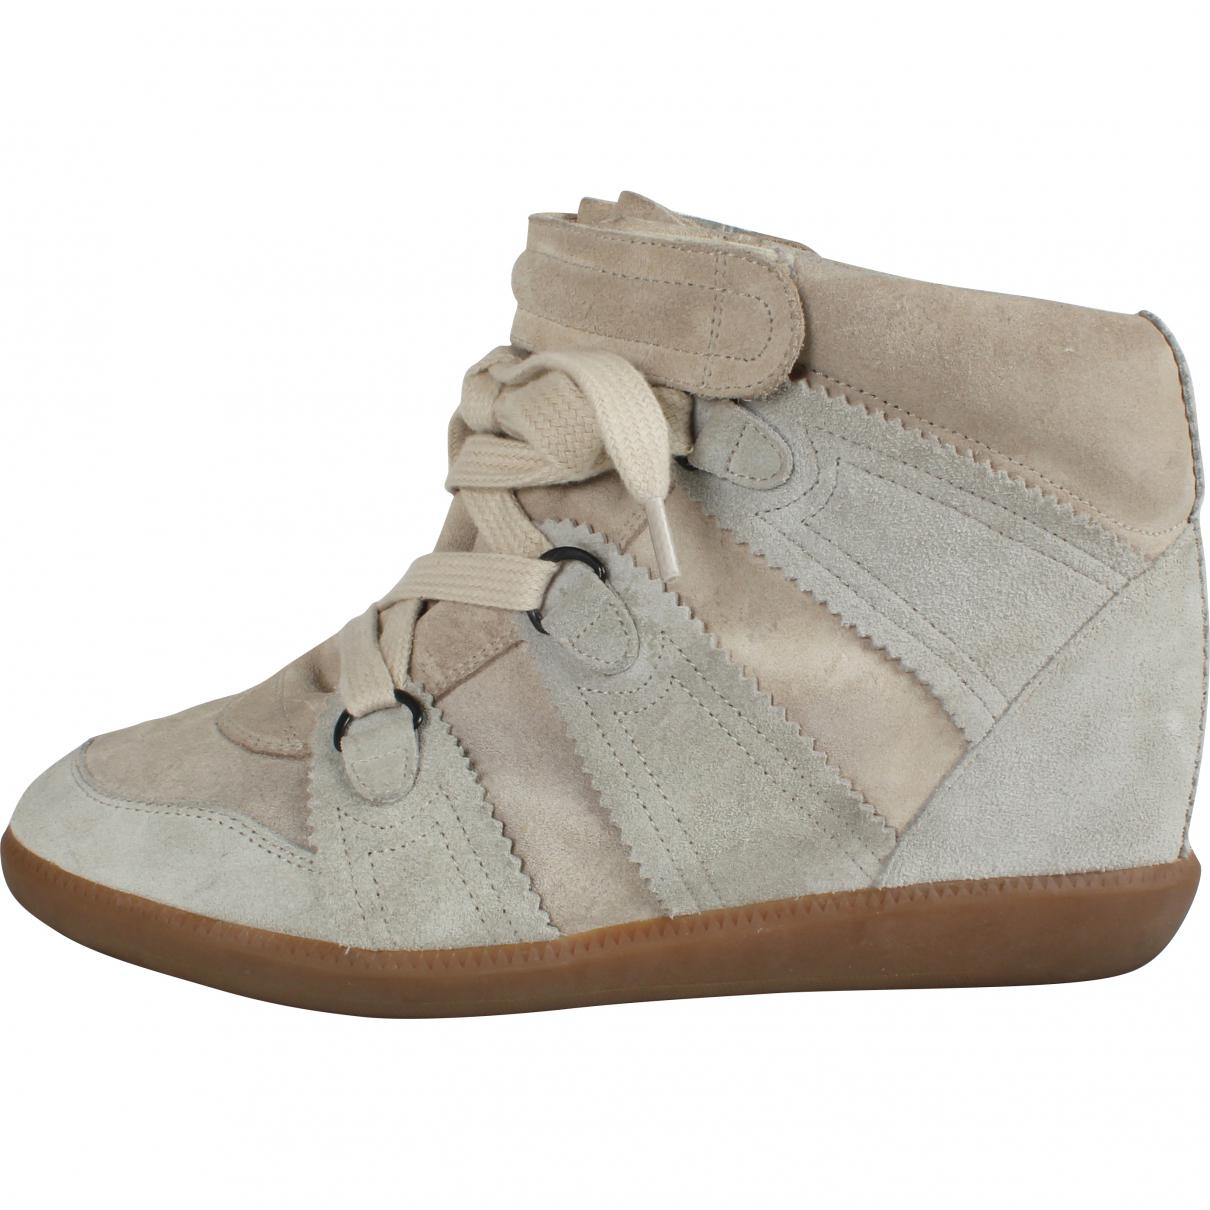 Pre-owned - Trainers Isabel Marant SgyoyWn7